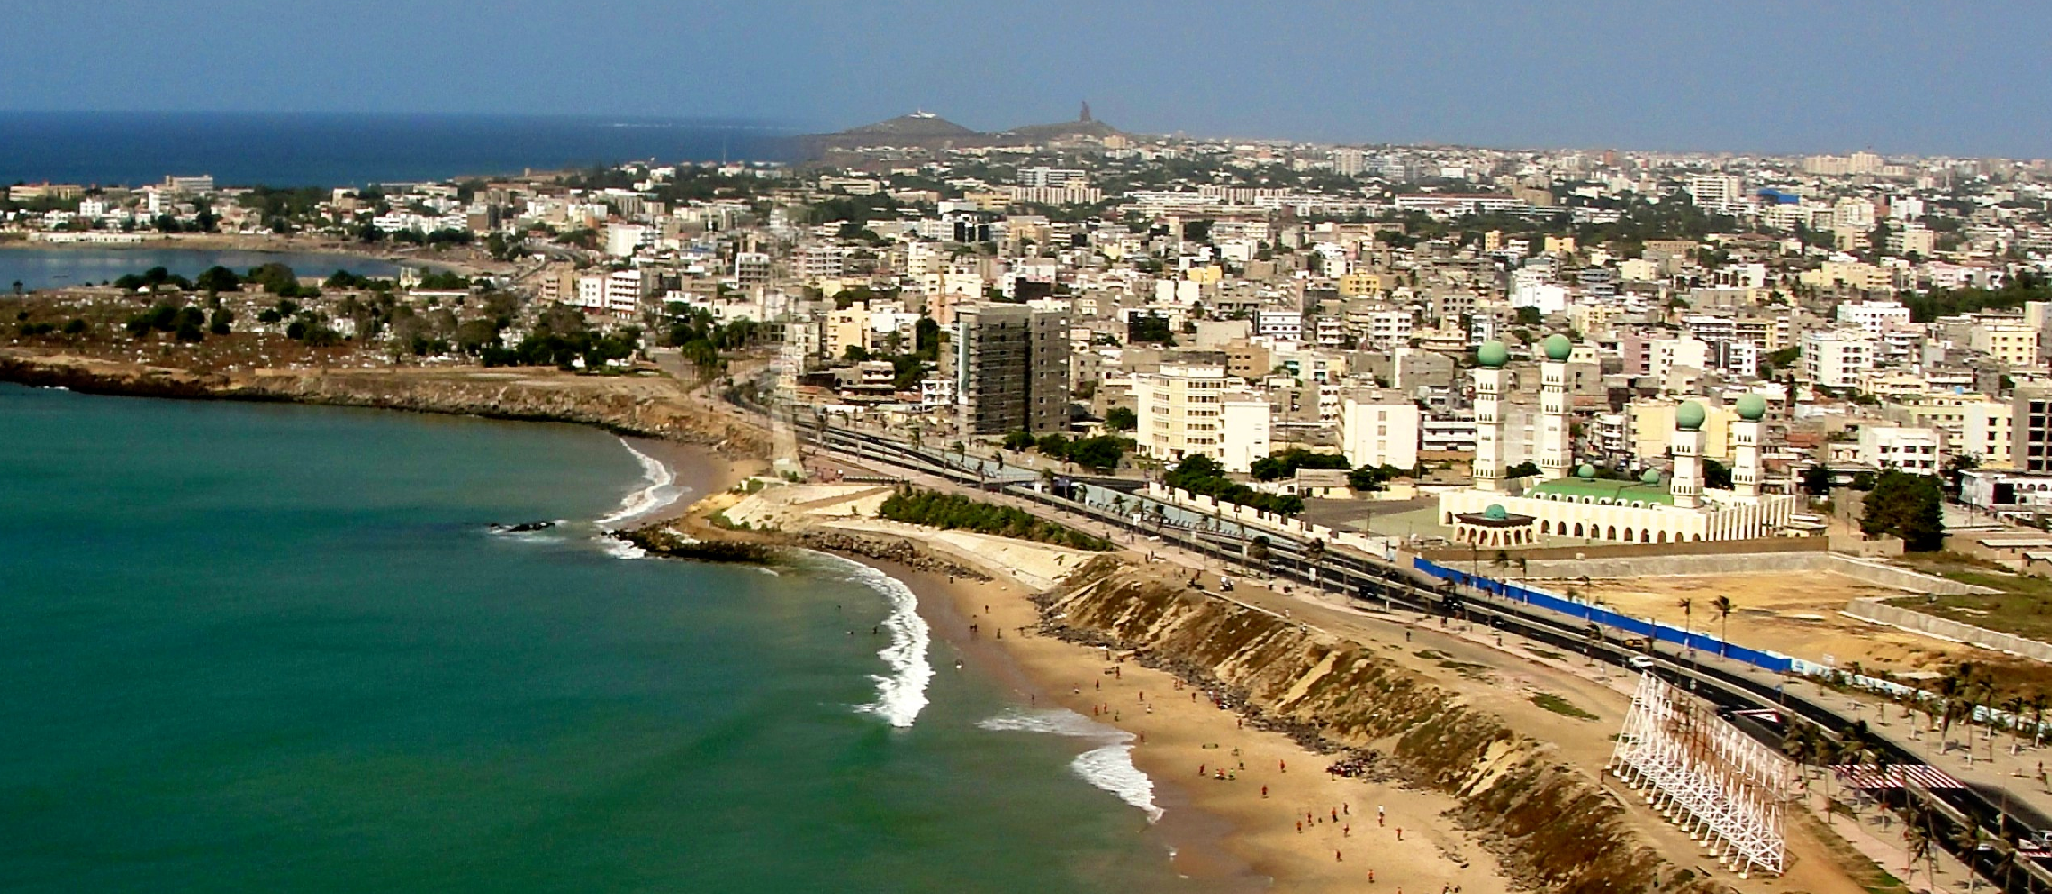 Dakar. Photo credit: Jeff Attaway@flickr